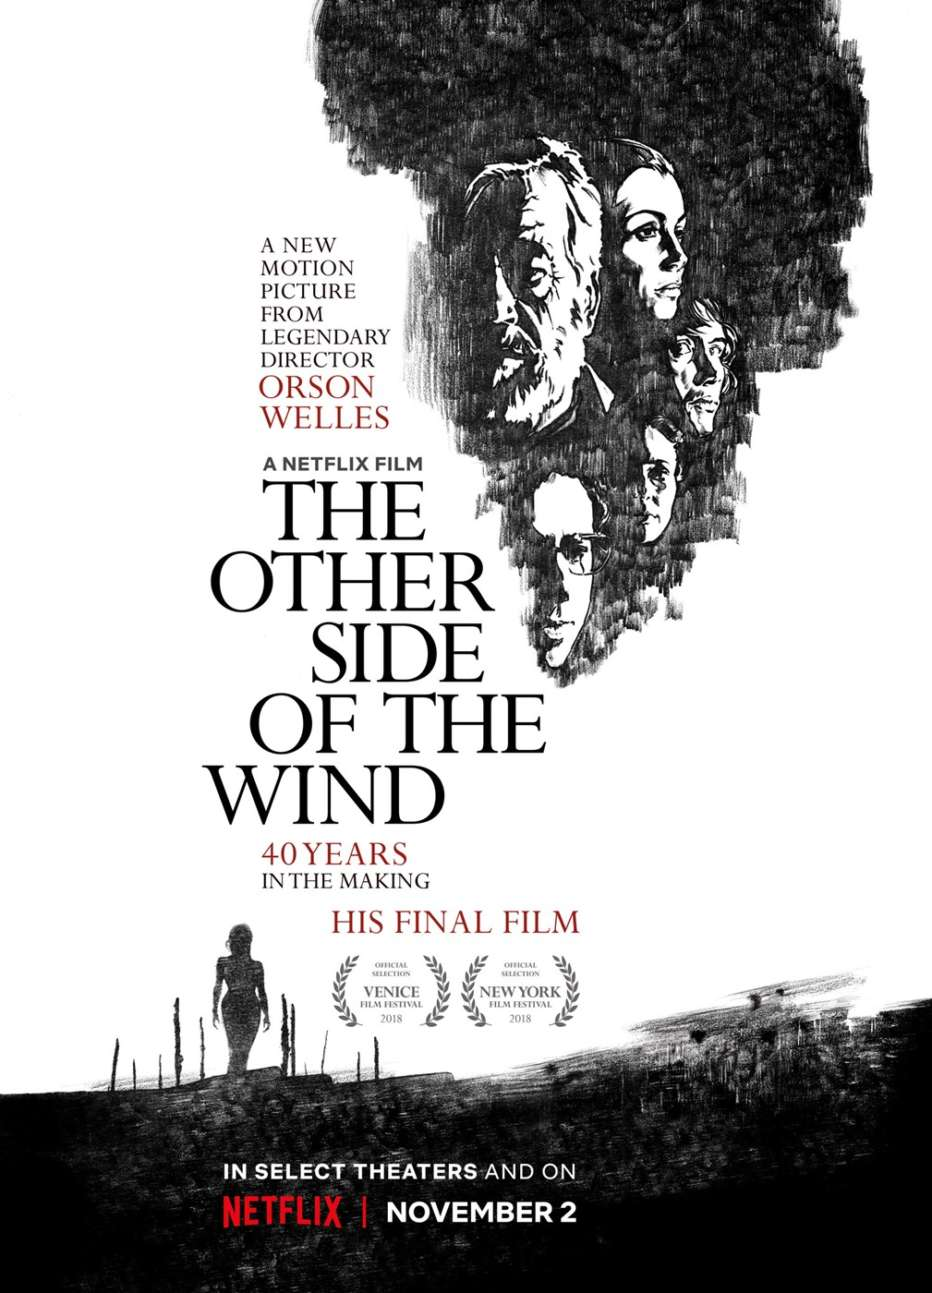 The-Other-Side-of-the-Wind-1970-2018-Orson-Welles-006.jpg